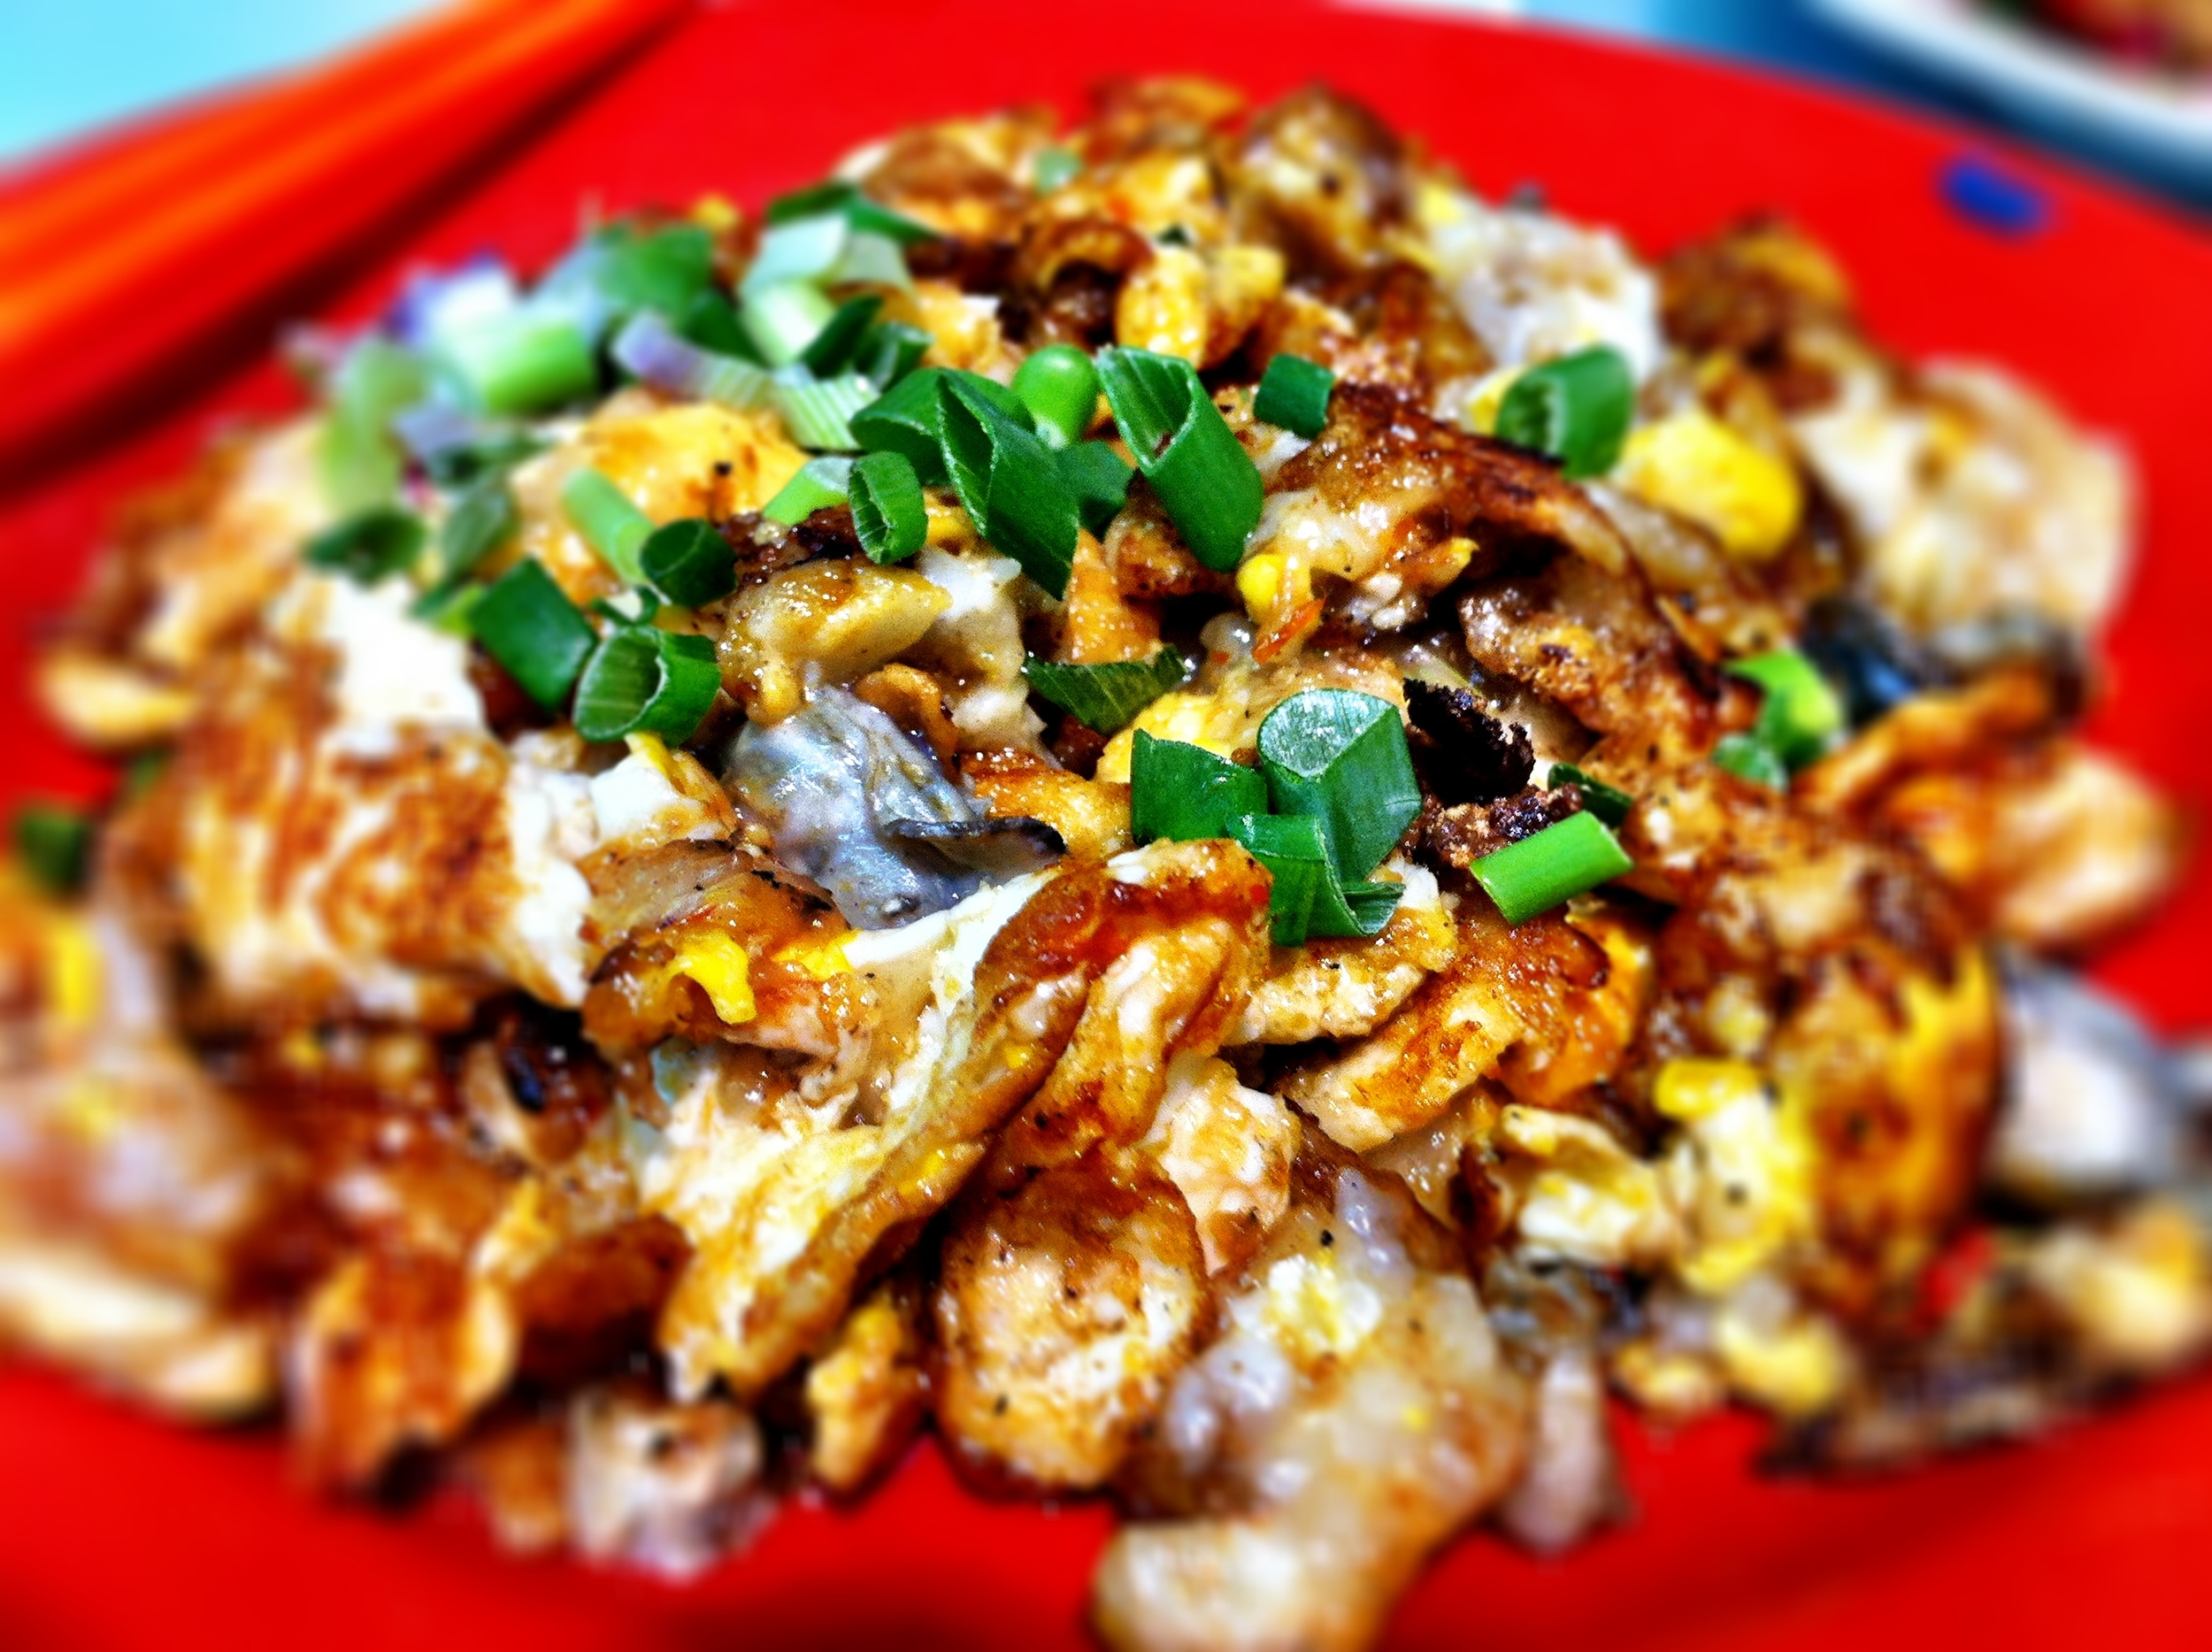 Oyster omelette: Shun Li Fried Oysters: Alexandra Village Food Centre, 120 Bukit Merah Lane 1, #01-78, Singapore 150120